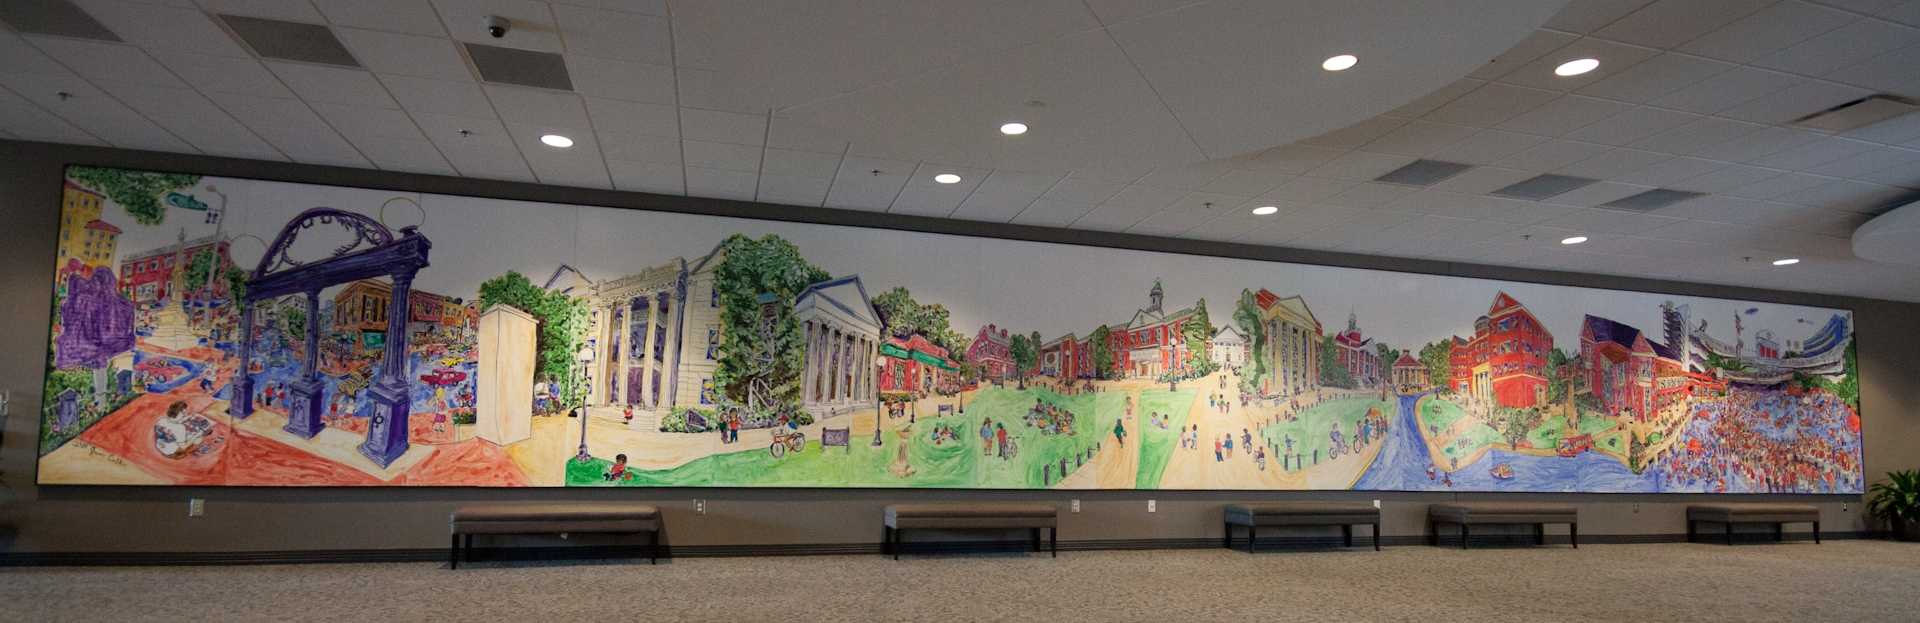 North Campus (Tate) Mural    Started in 2008, Completed in 2009    64 feet long by 8 feet tall    Mixed Media: Ink, watercolor, and acrylic on birch panel    Located in the UGA Tate Student Center, 45 Baxter St, Athens, GA    Photo credit: Robert Lowery